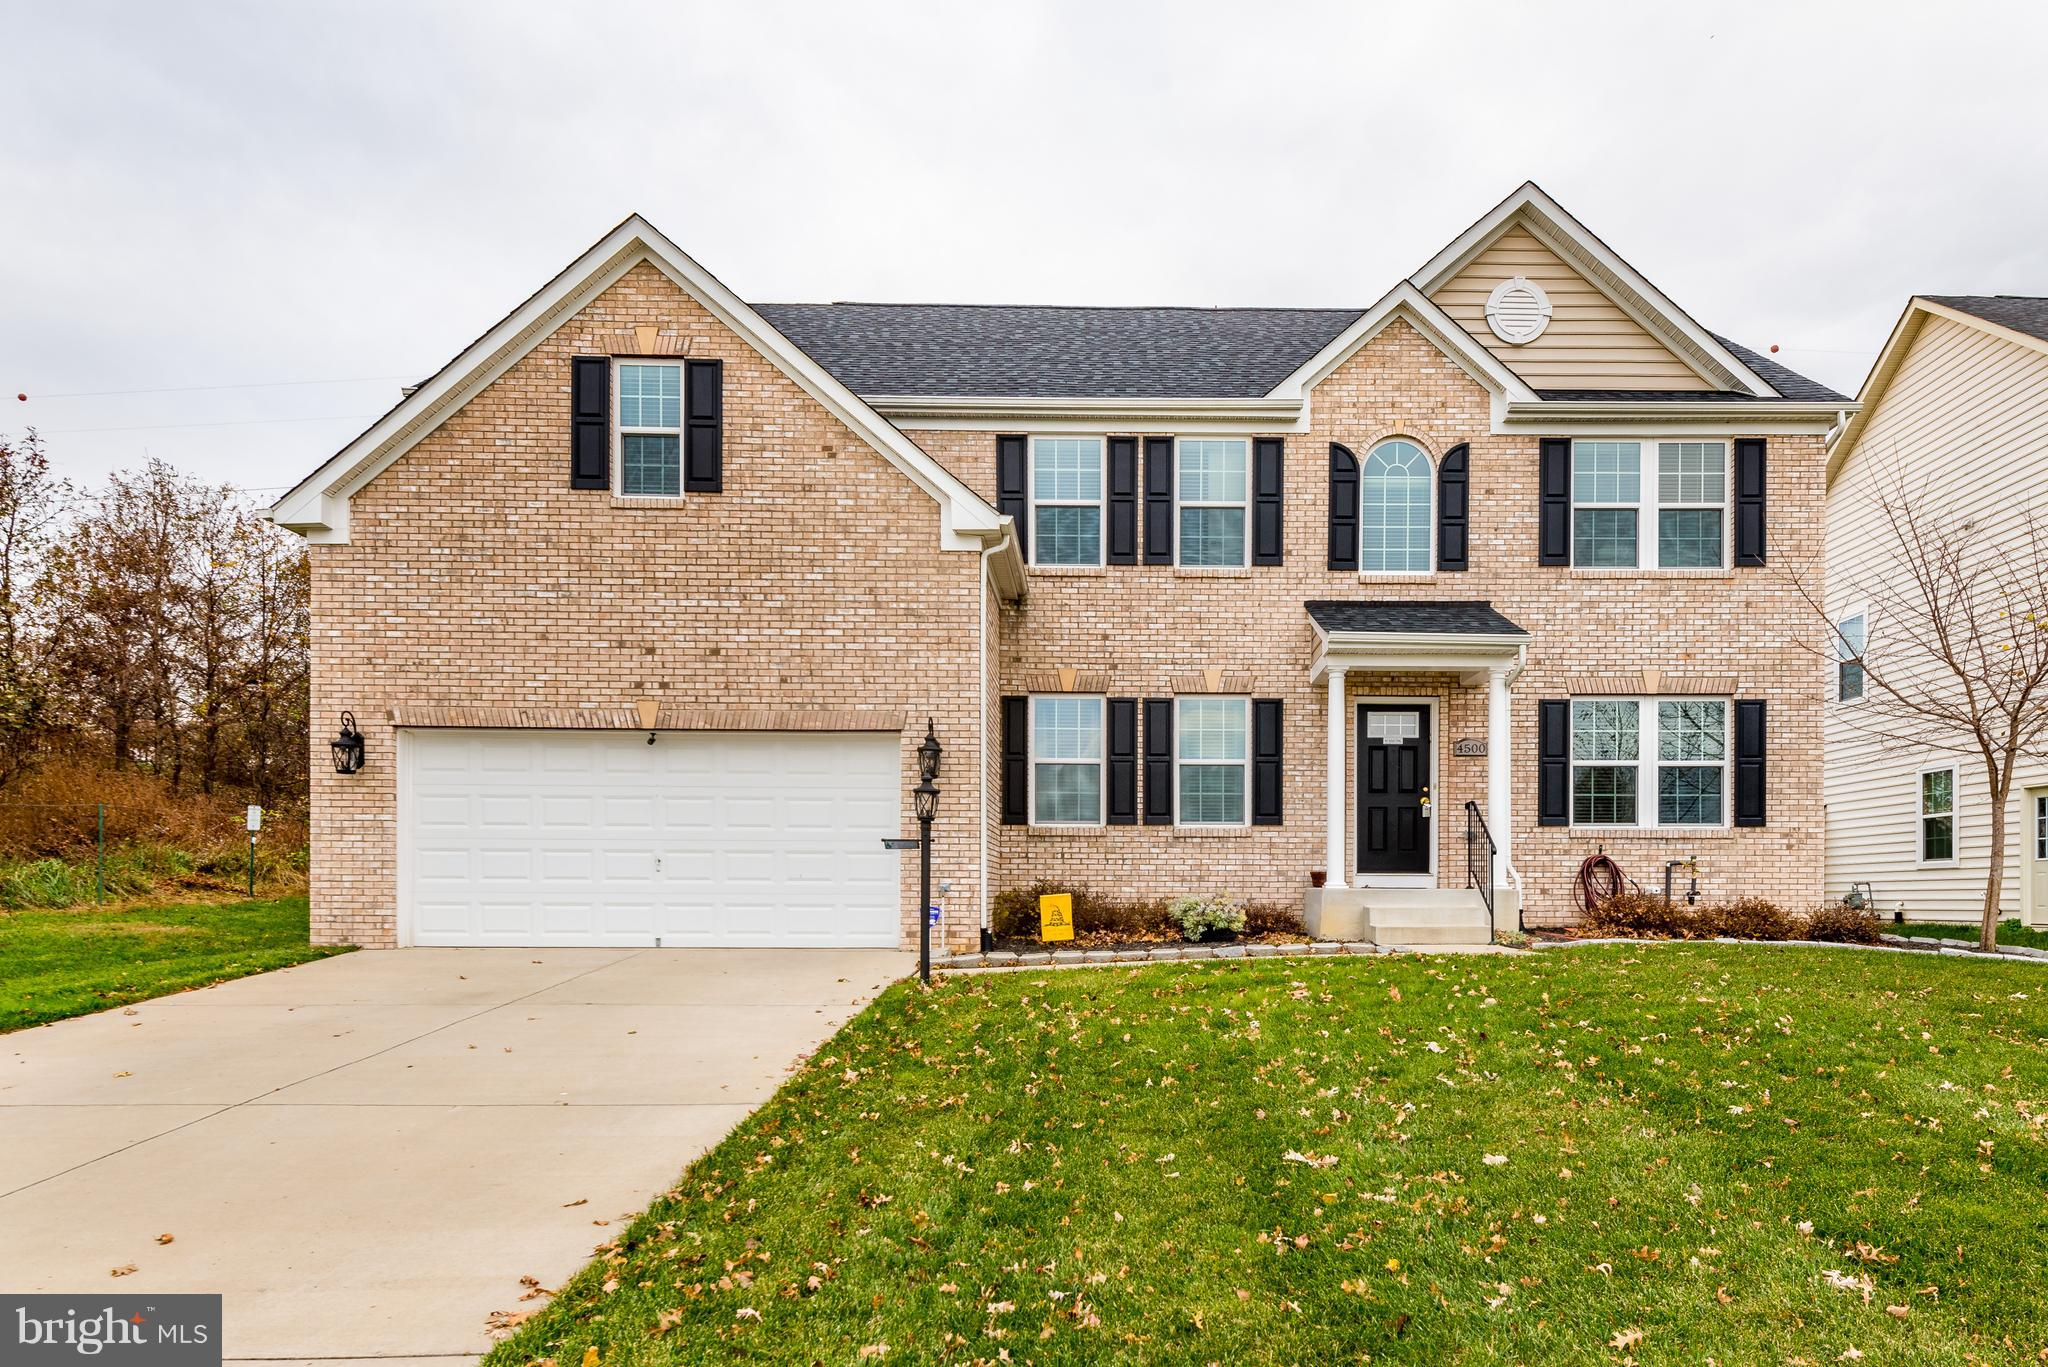 4500 DOCTOR BEANS LEGACY CIRCLE, BOWIE, MD 20720